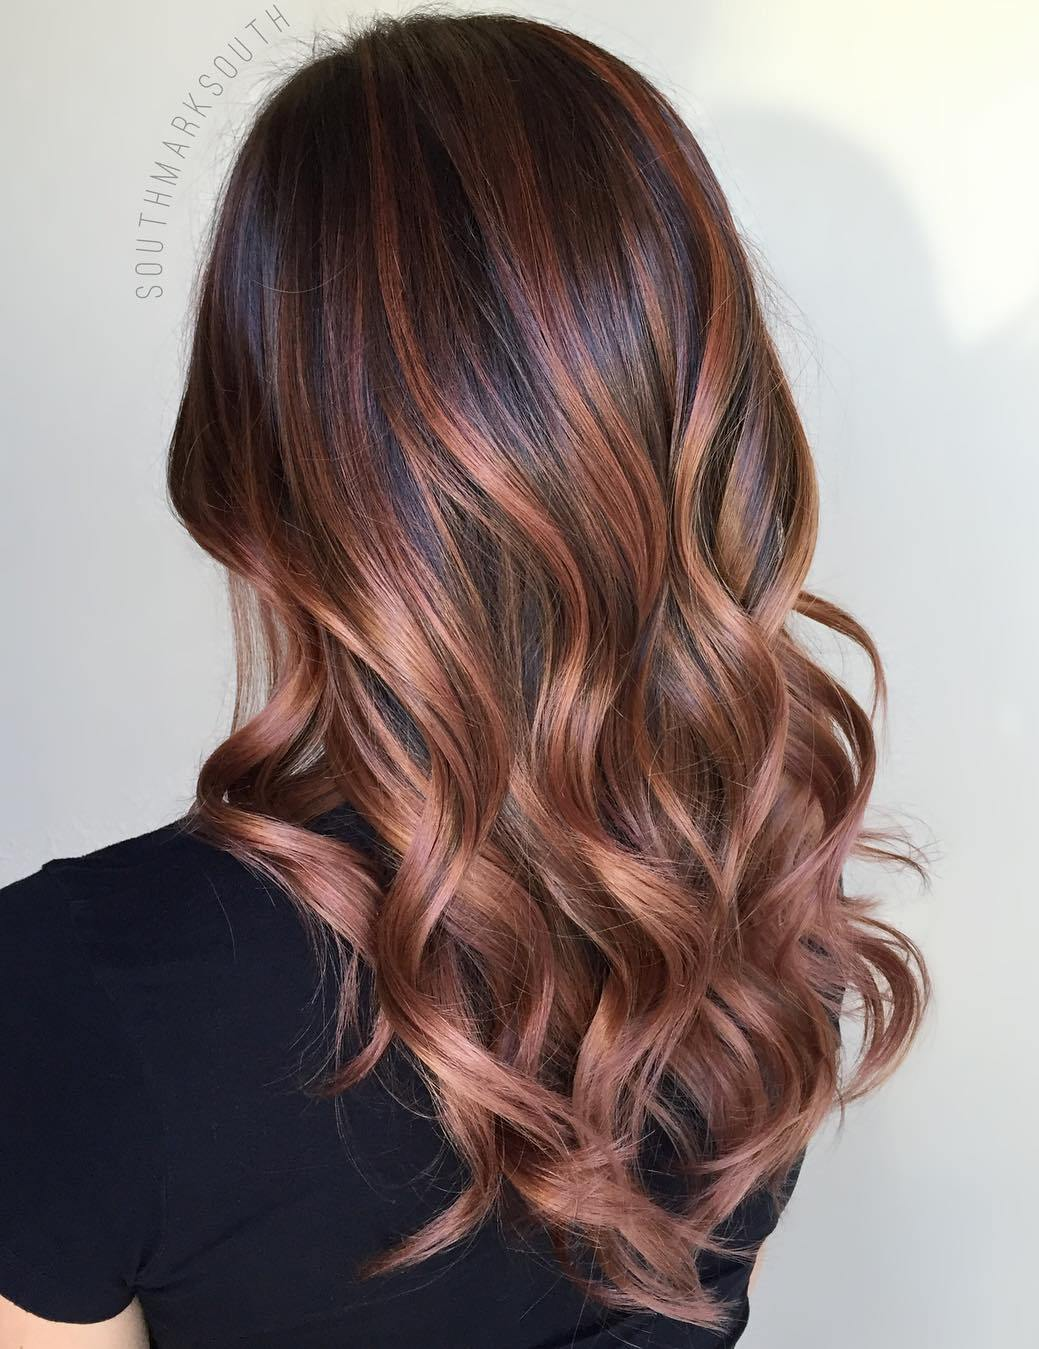 70 Flattering Balayage Hair Color Ideas – Balayage ...